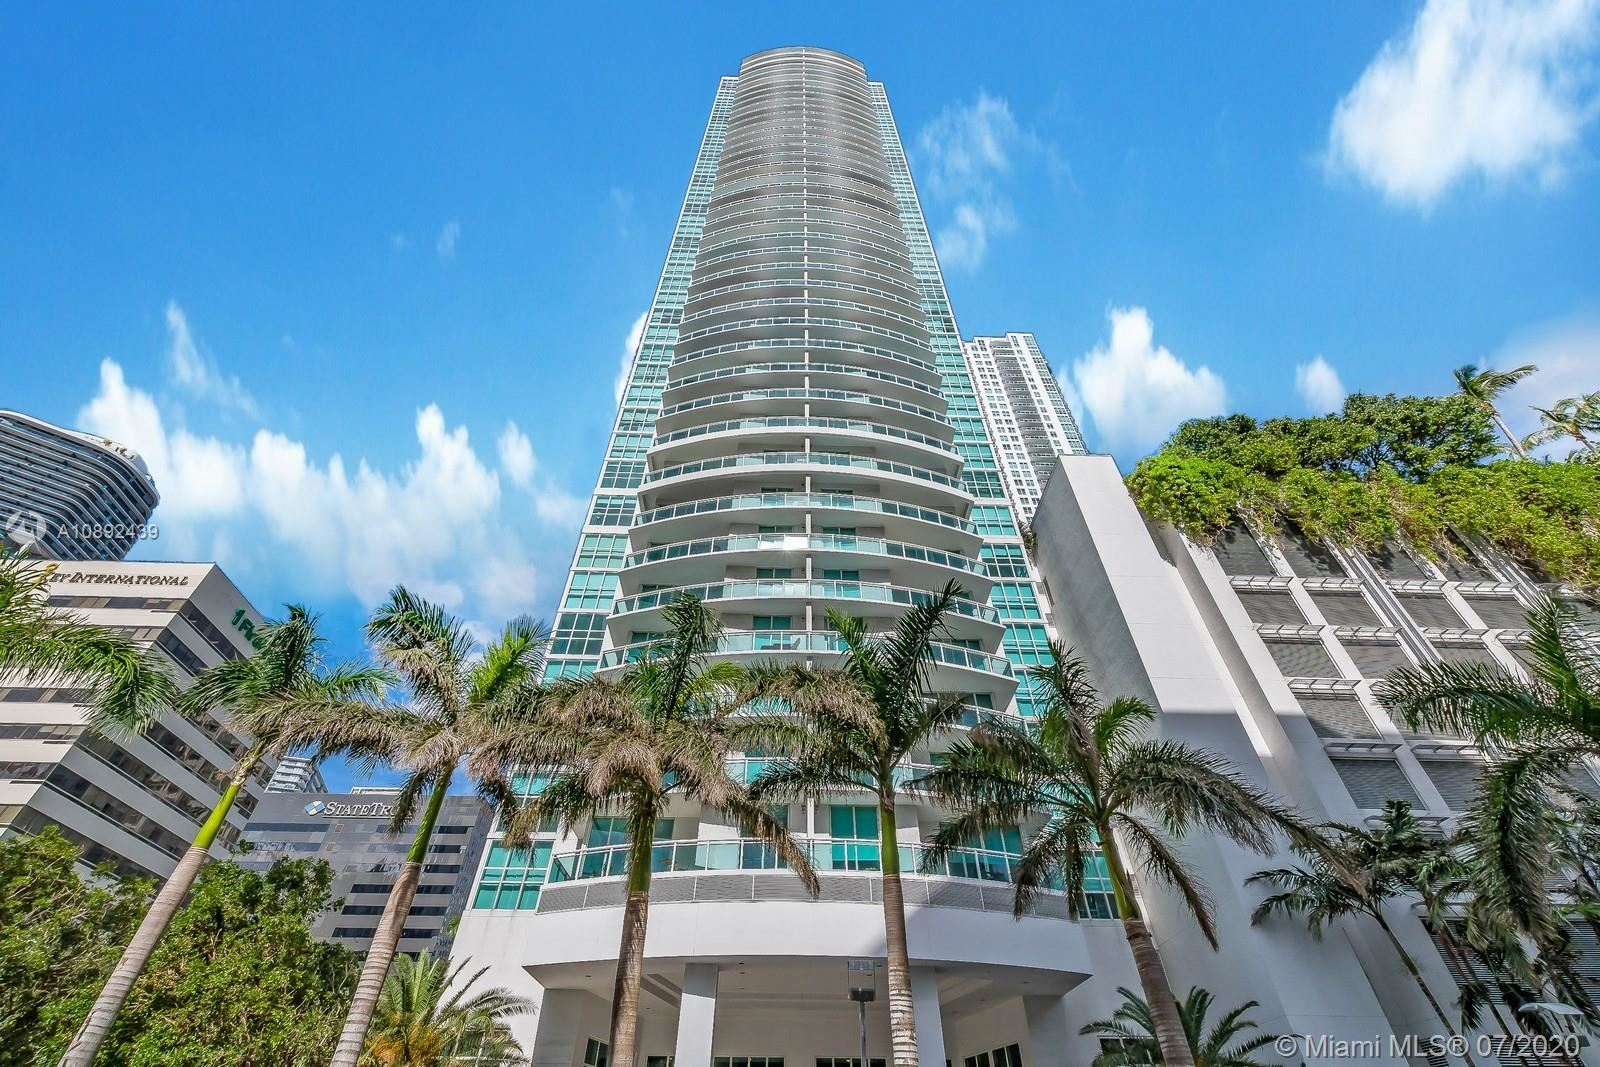 951 Brickell Ave #4206, Miami, FL 33131 - #: A10892439